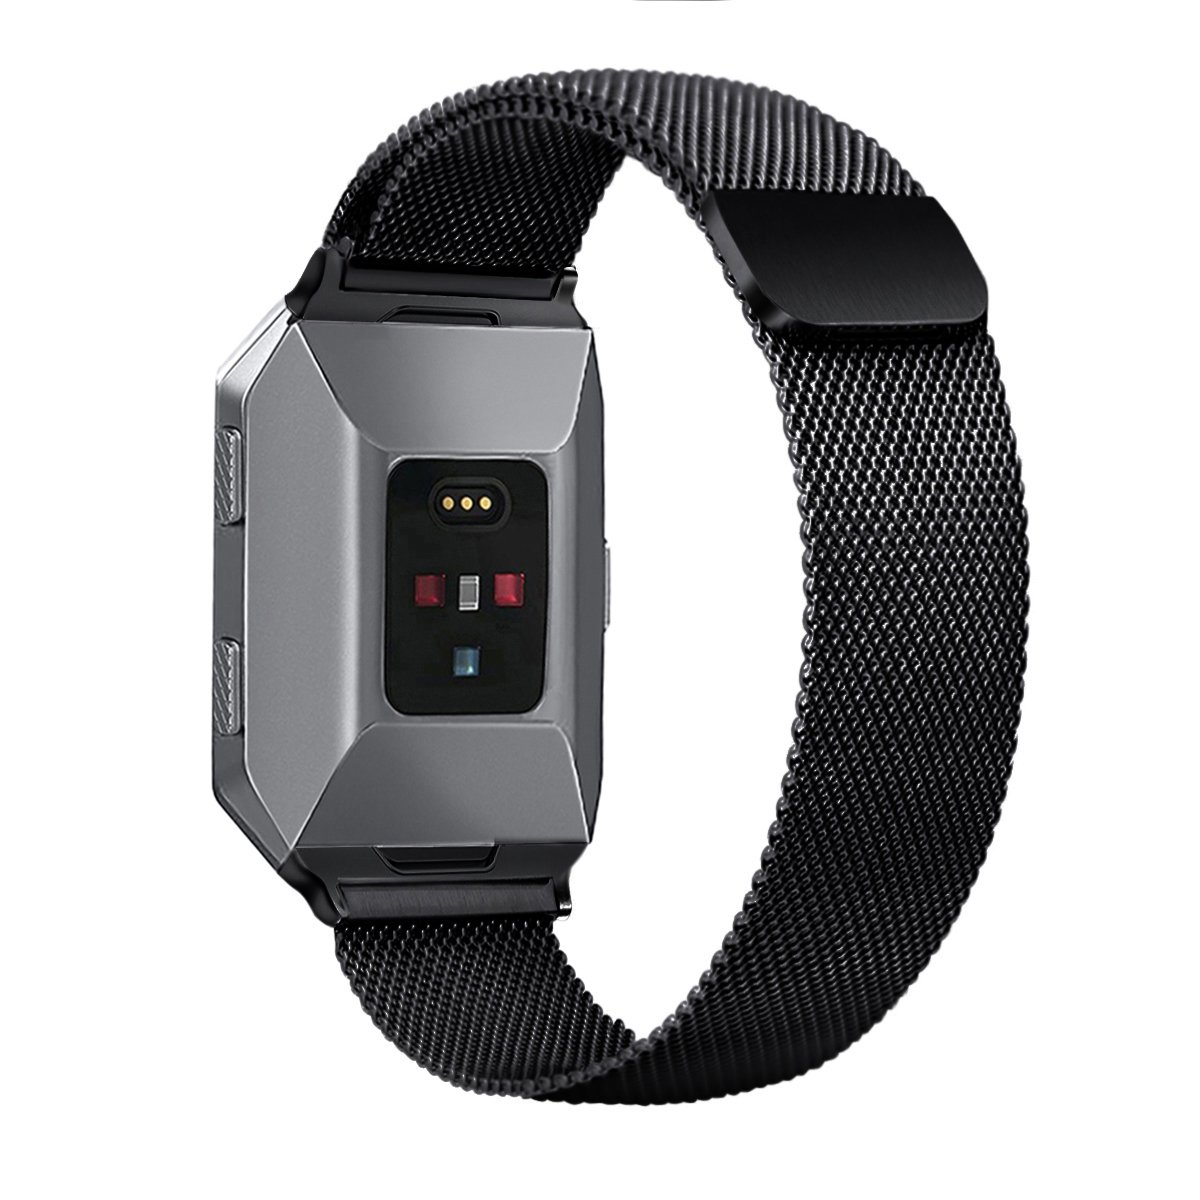 Bayite For Fitbit Ionic Bands Stainless Steel Milanese Loop Metal Charcoal Smoke Gray Replacement Strap With Unique Magnet Lock Accessories Large Silver